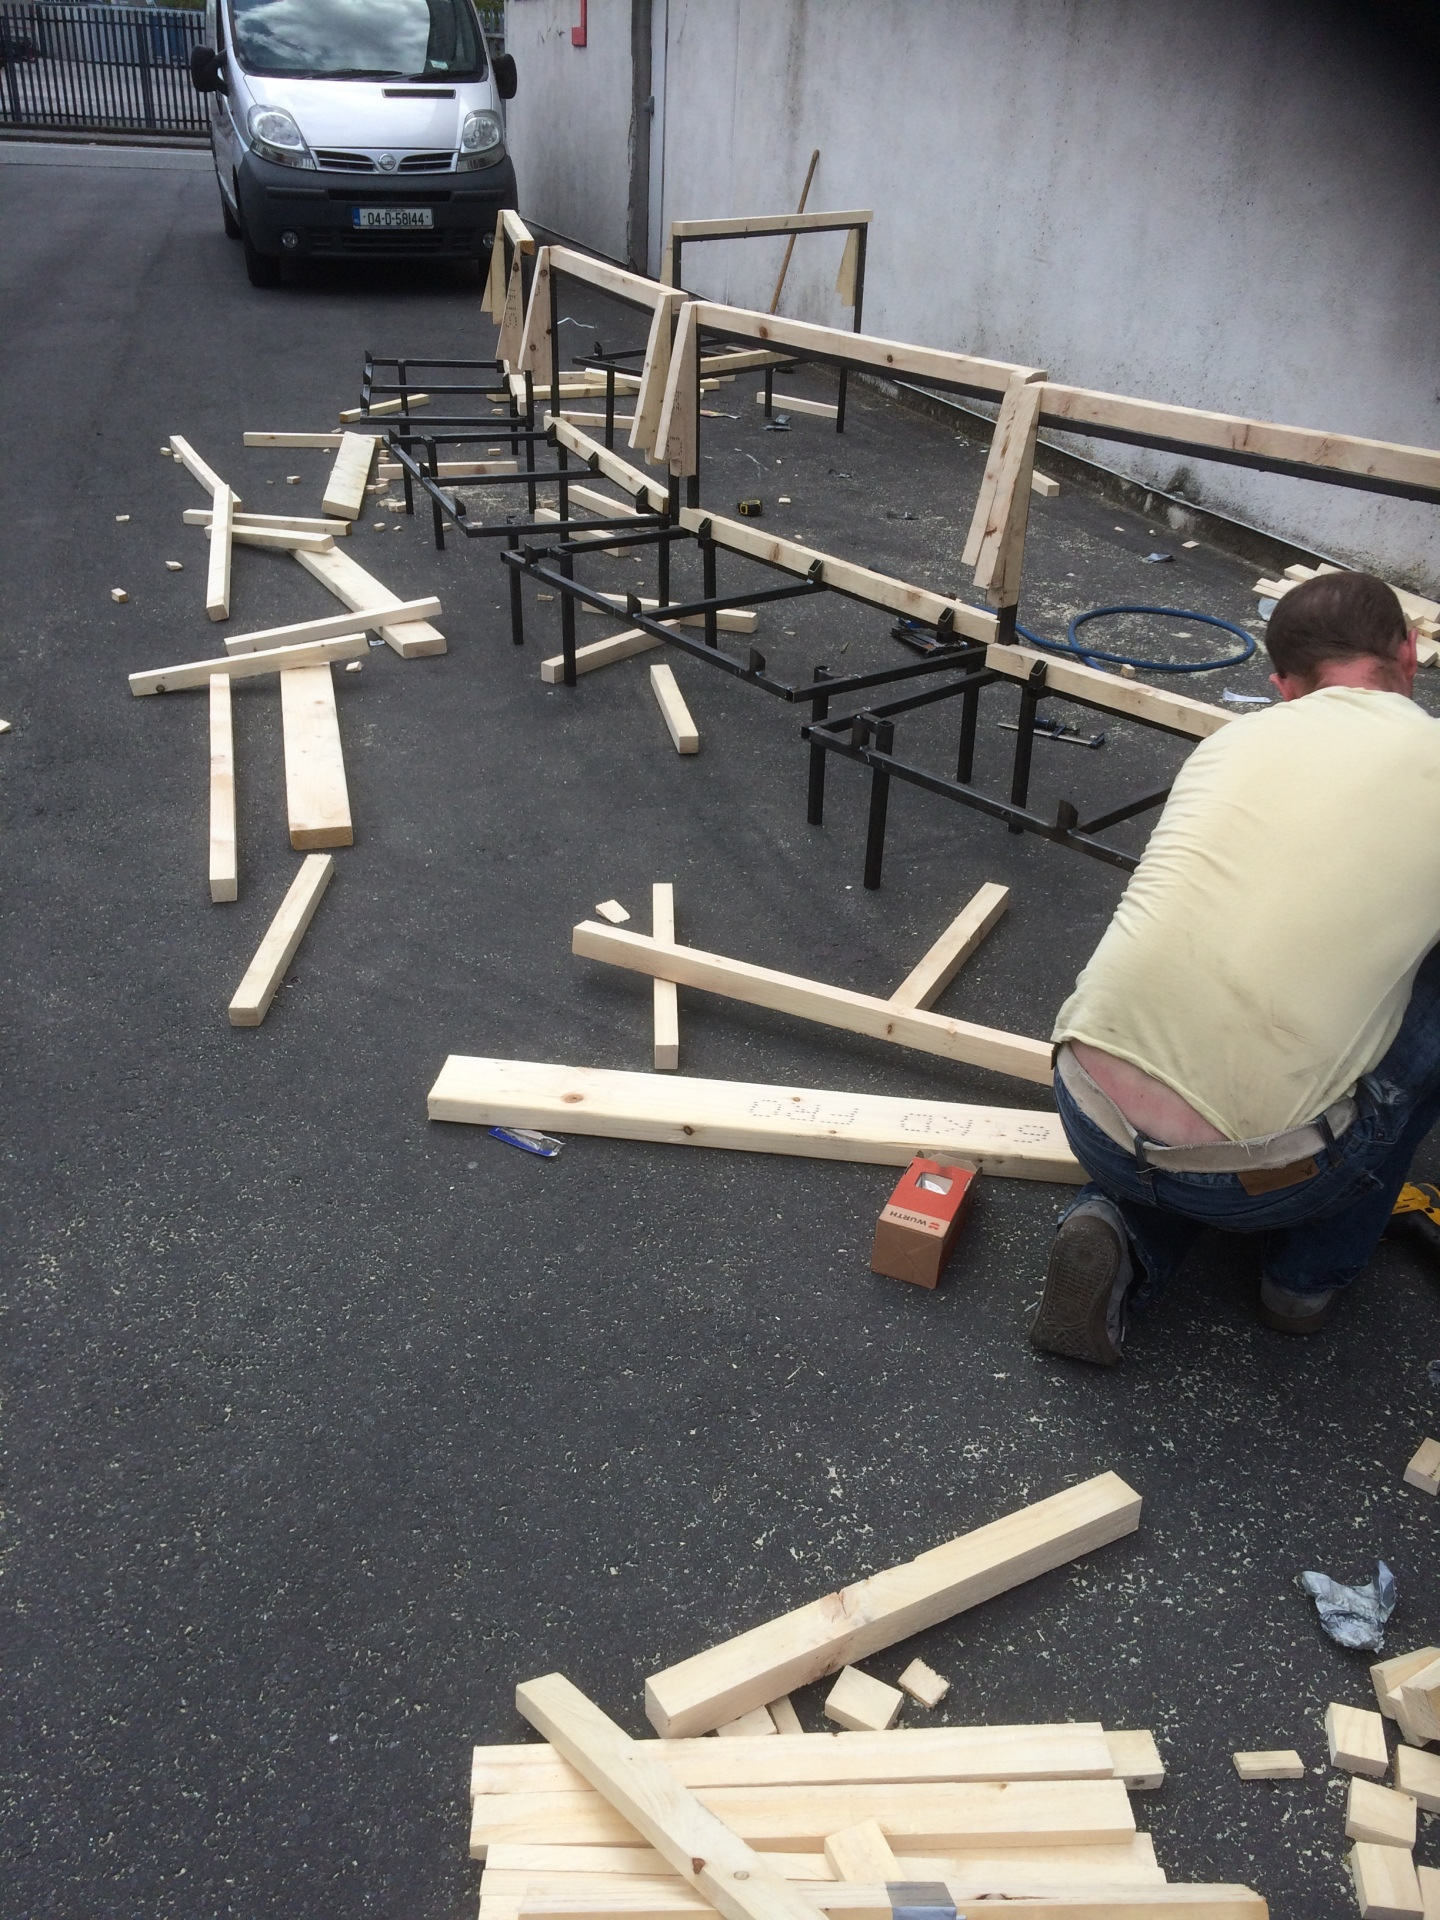 Chair manufacturing